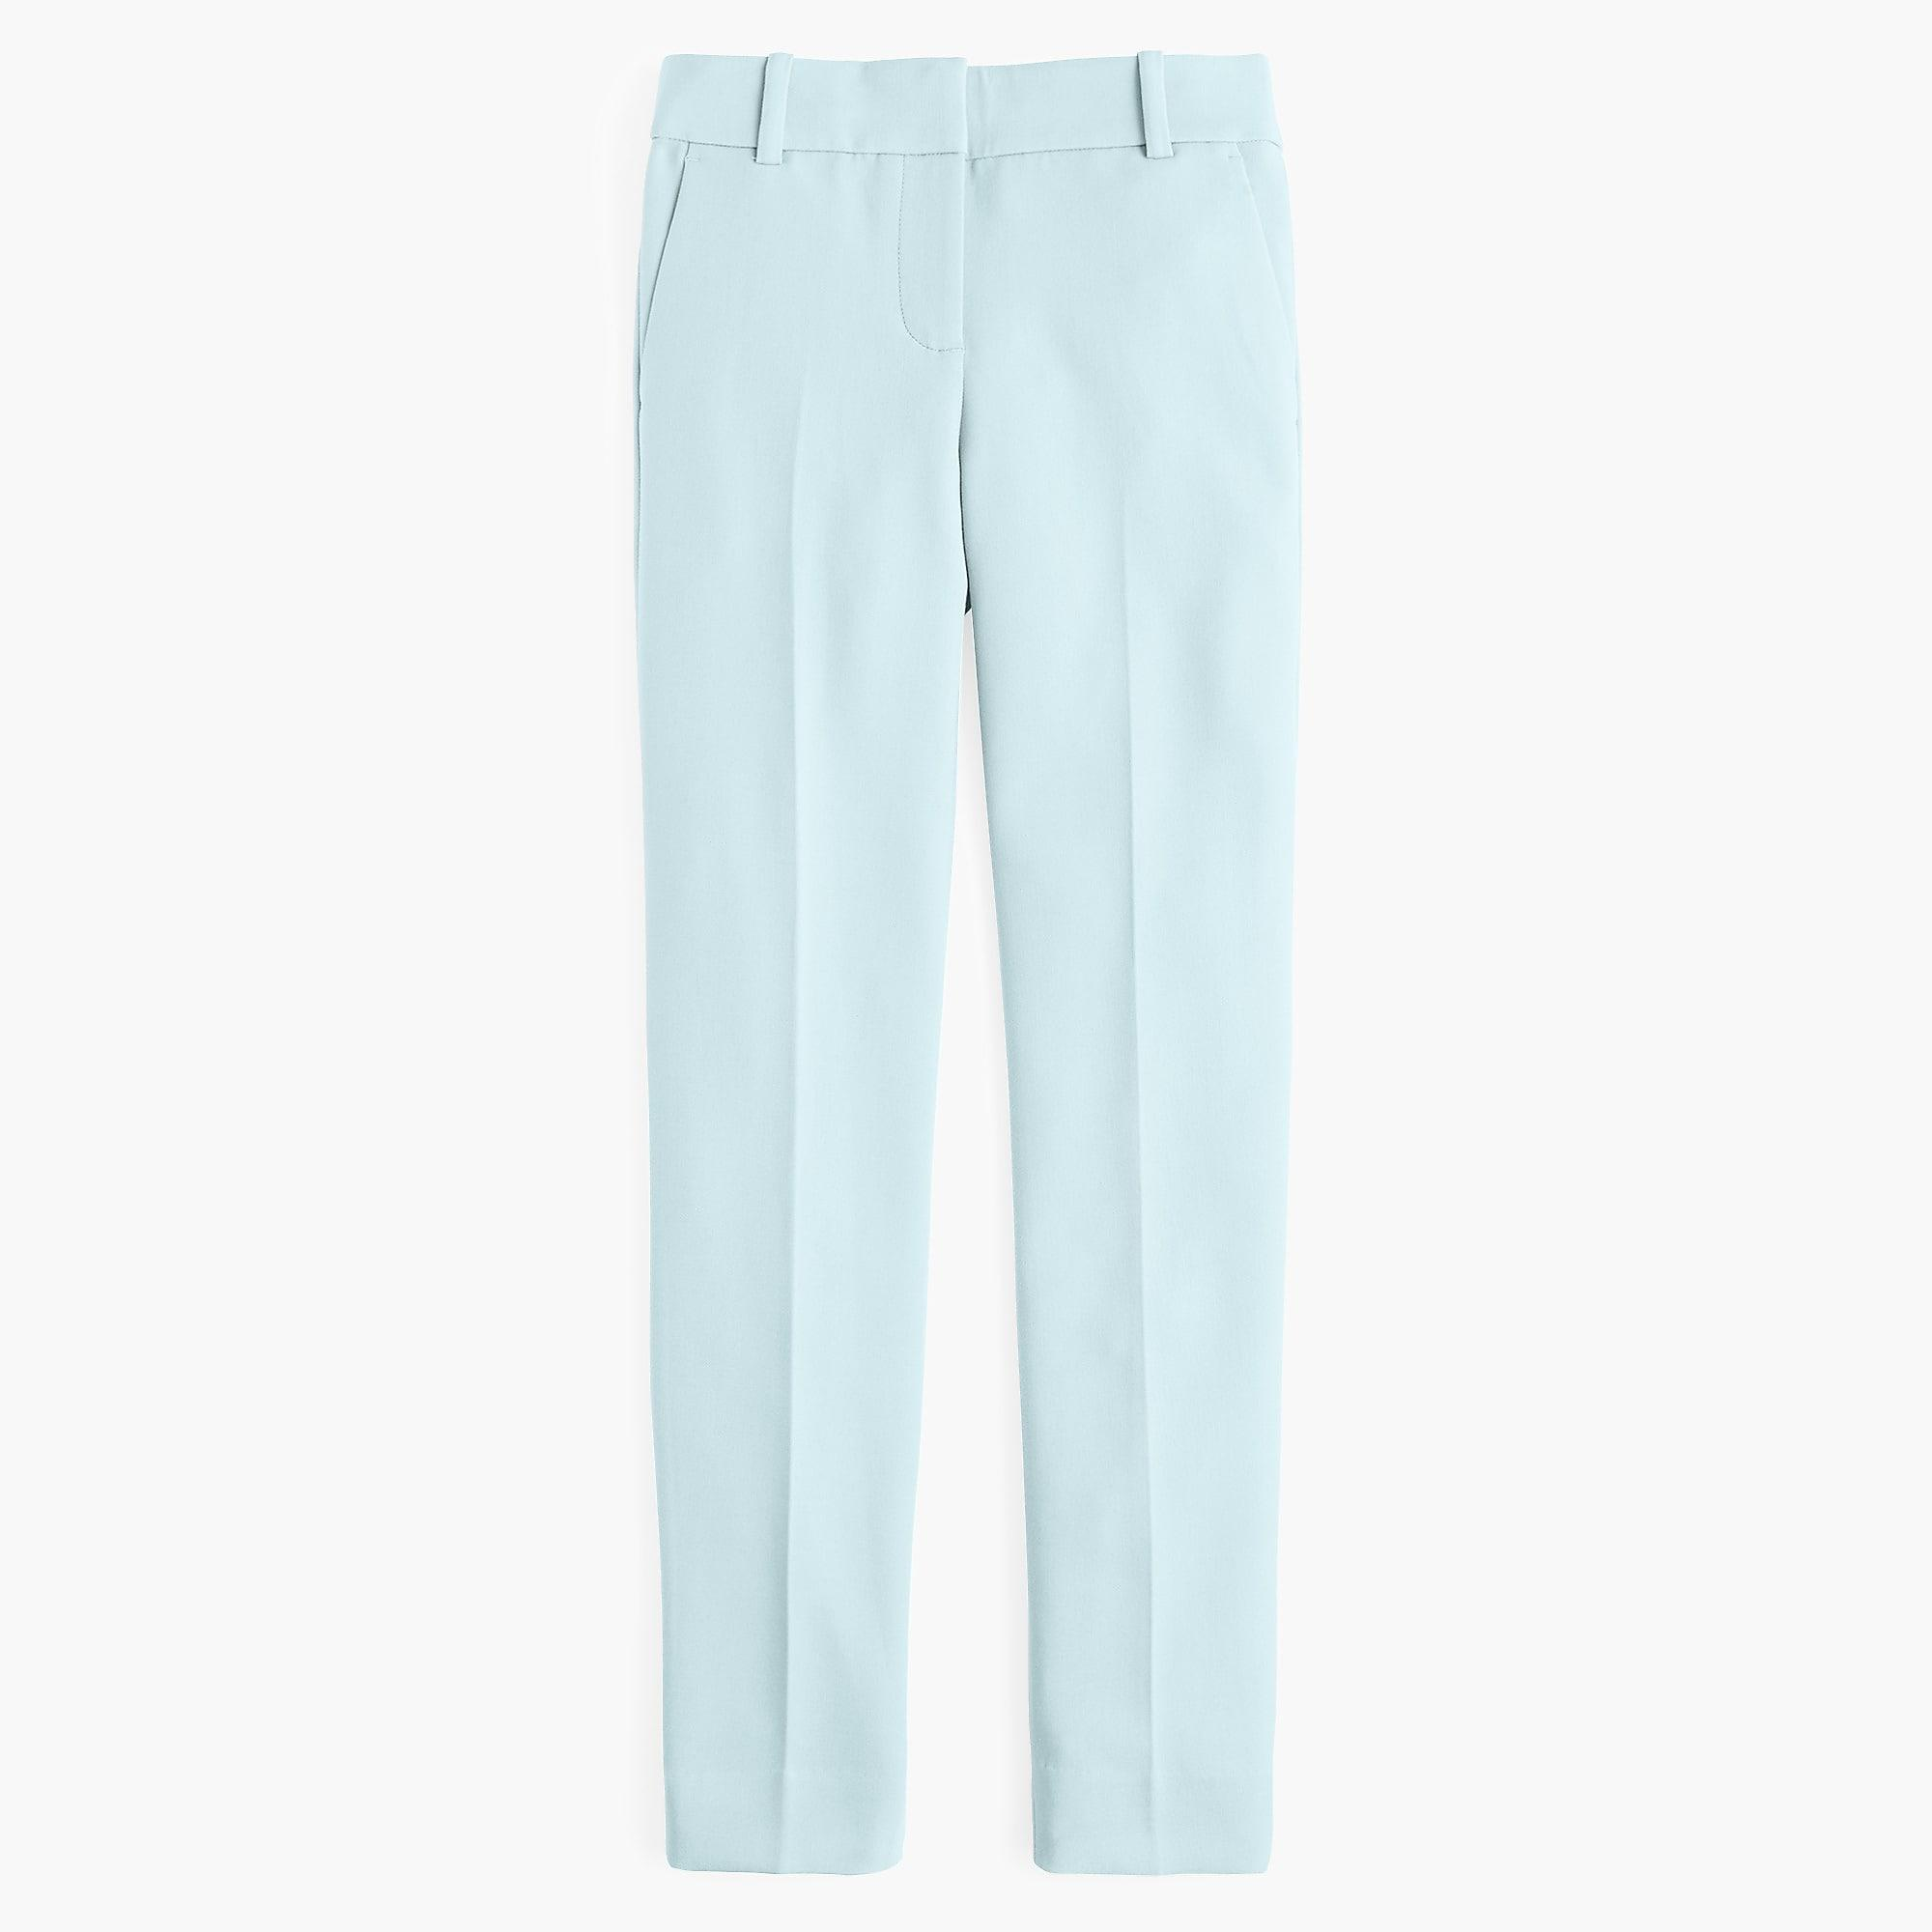 8eb2c7adcc6 J.Crew. Women s Blue Petite Cameron Slim Crop Pant In Four-season Stretch